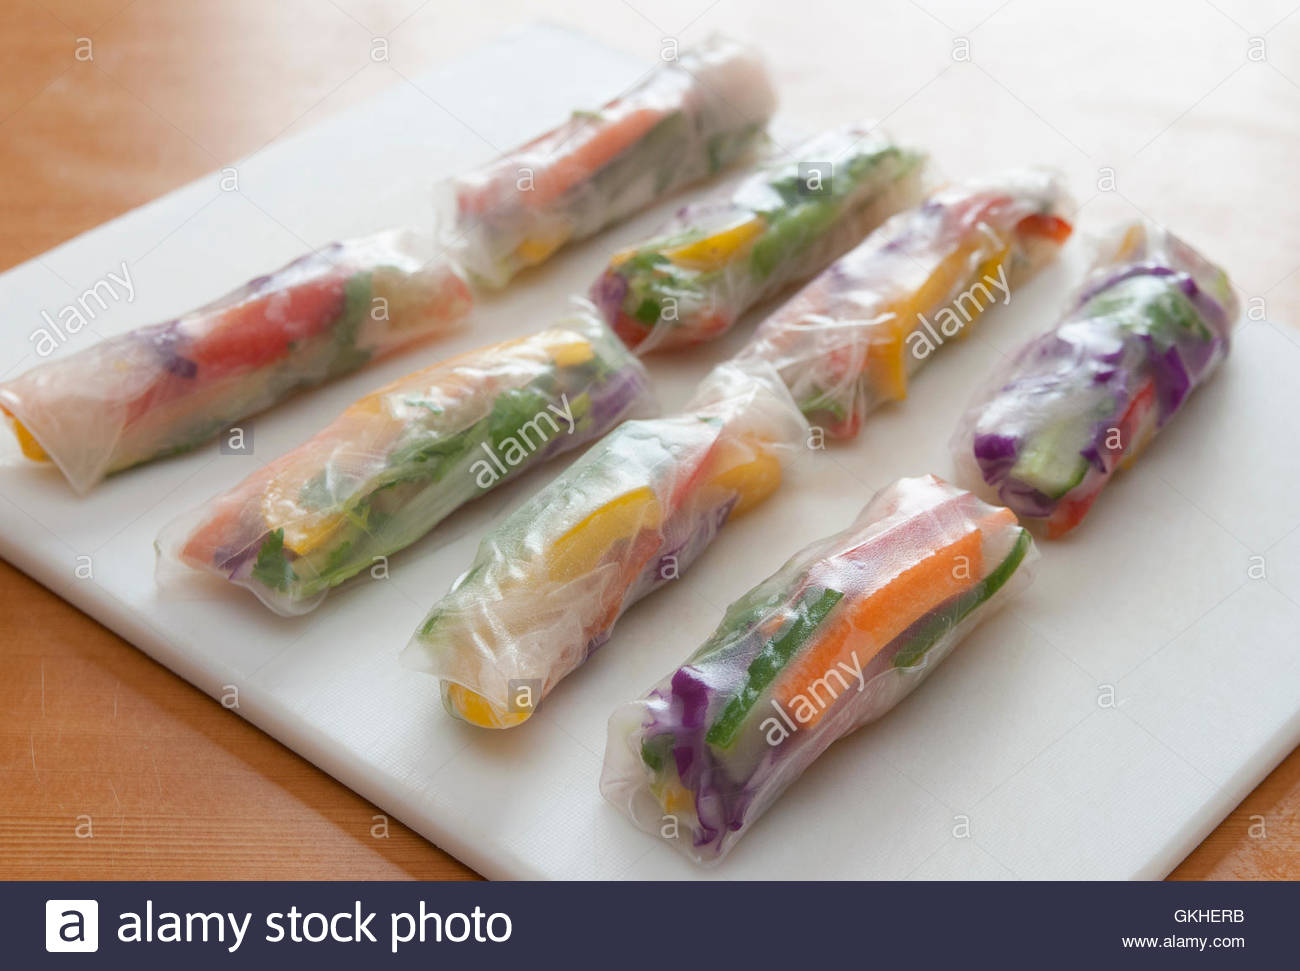 Rainbow vegetable spring rolls - Stock Image